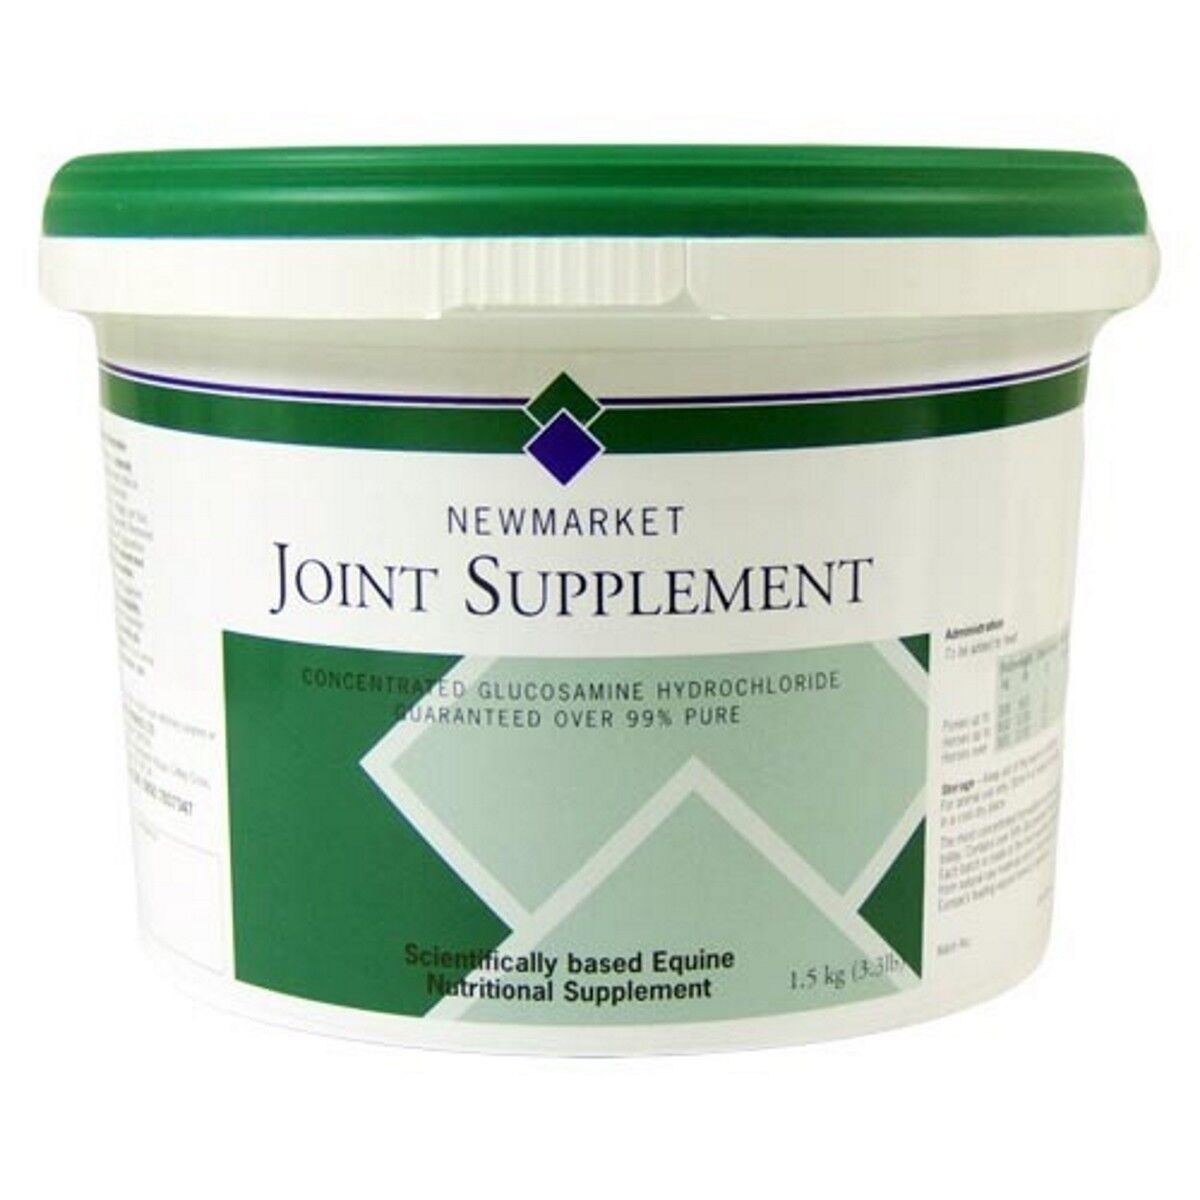 NEWMARKET JOINT SUPPLEMENT FOR HORSES 500g, 1.5kg & 2.5kg - ALL SIZES BEST PRICE